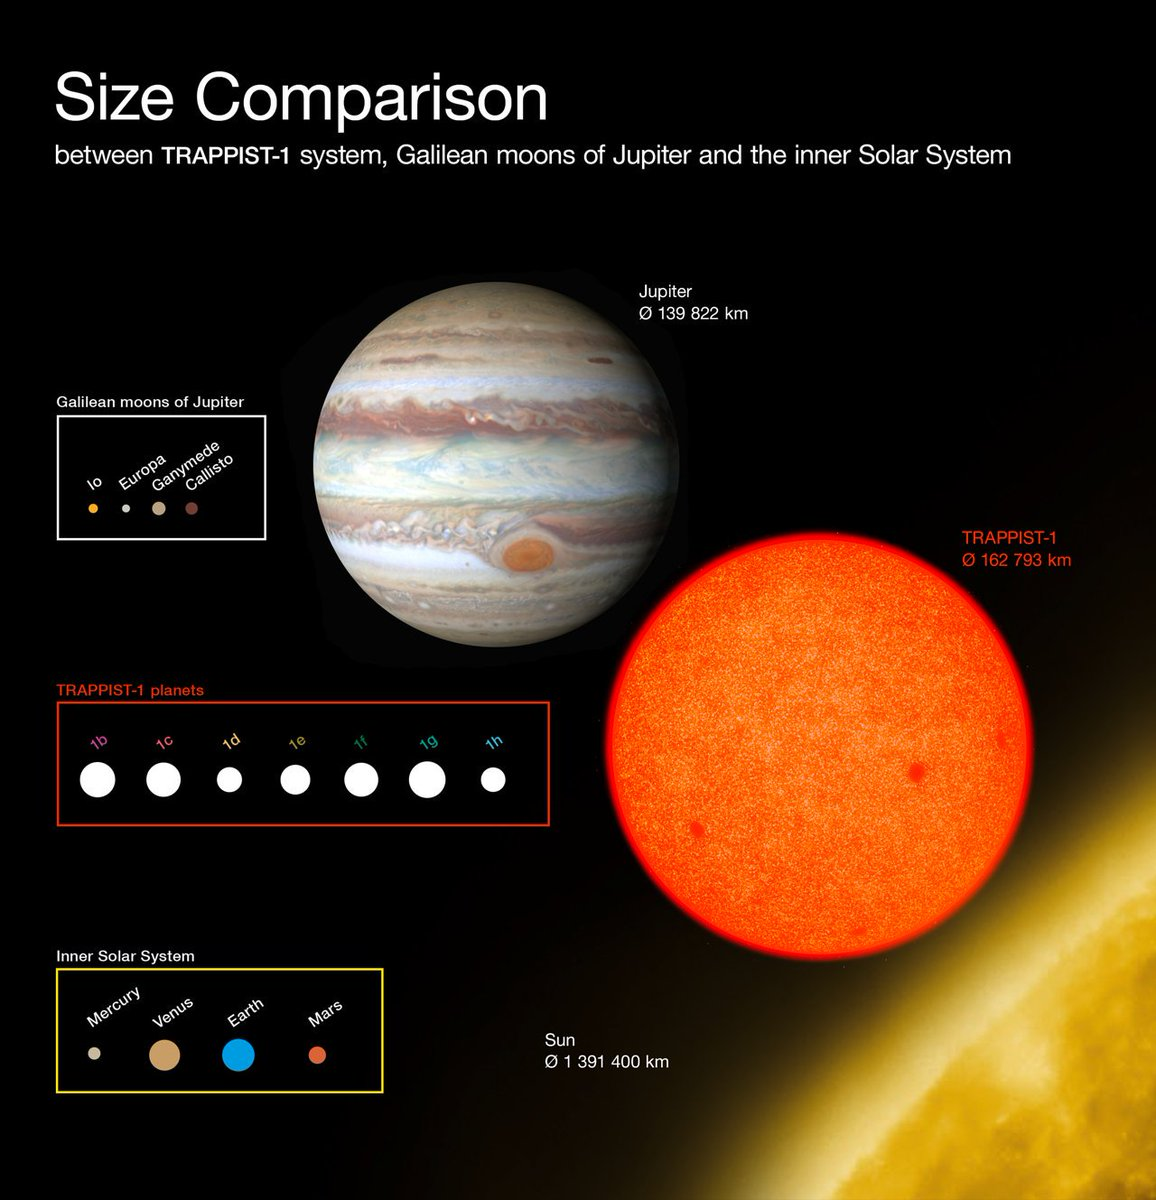 Illustration: sizes of #TRAPPIST1 planets vs. Solar System bodies. Read more: https://t.co/CHDlq1WS5G